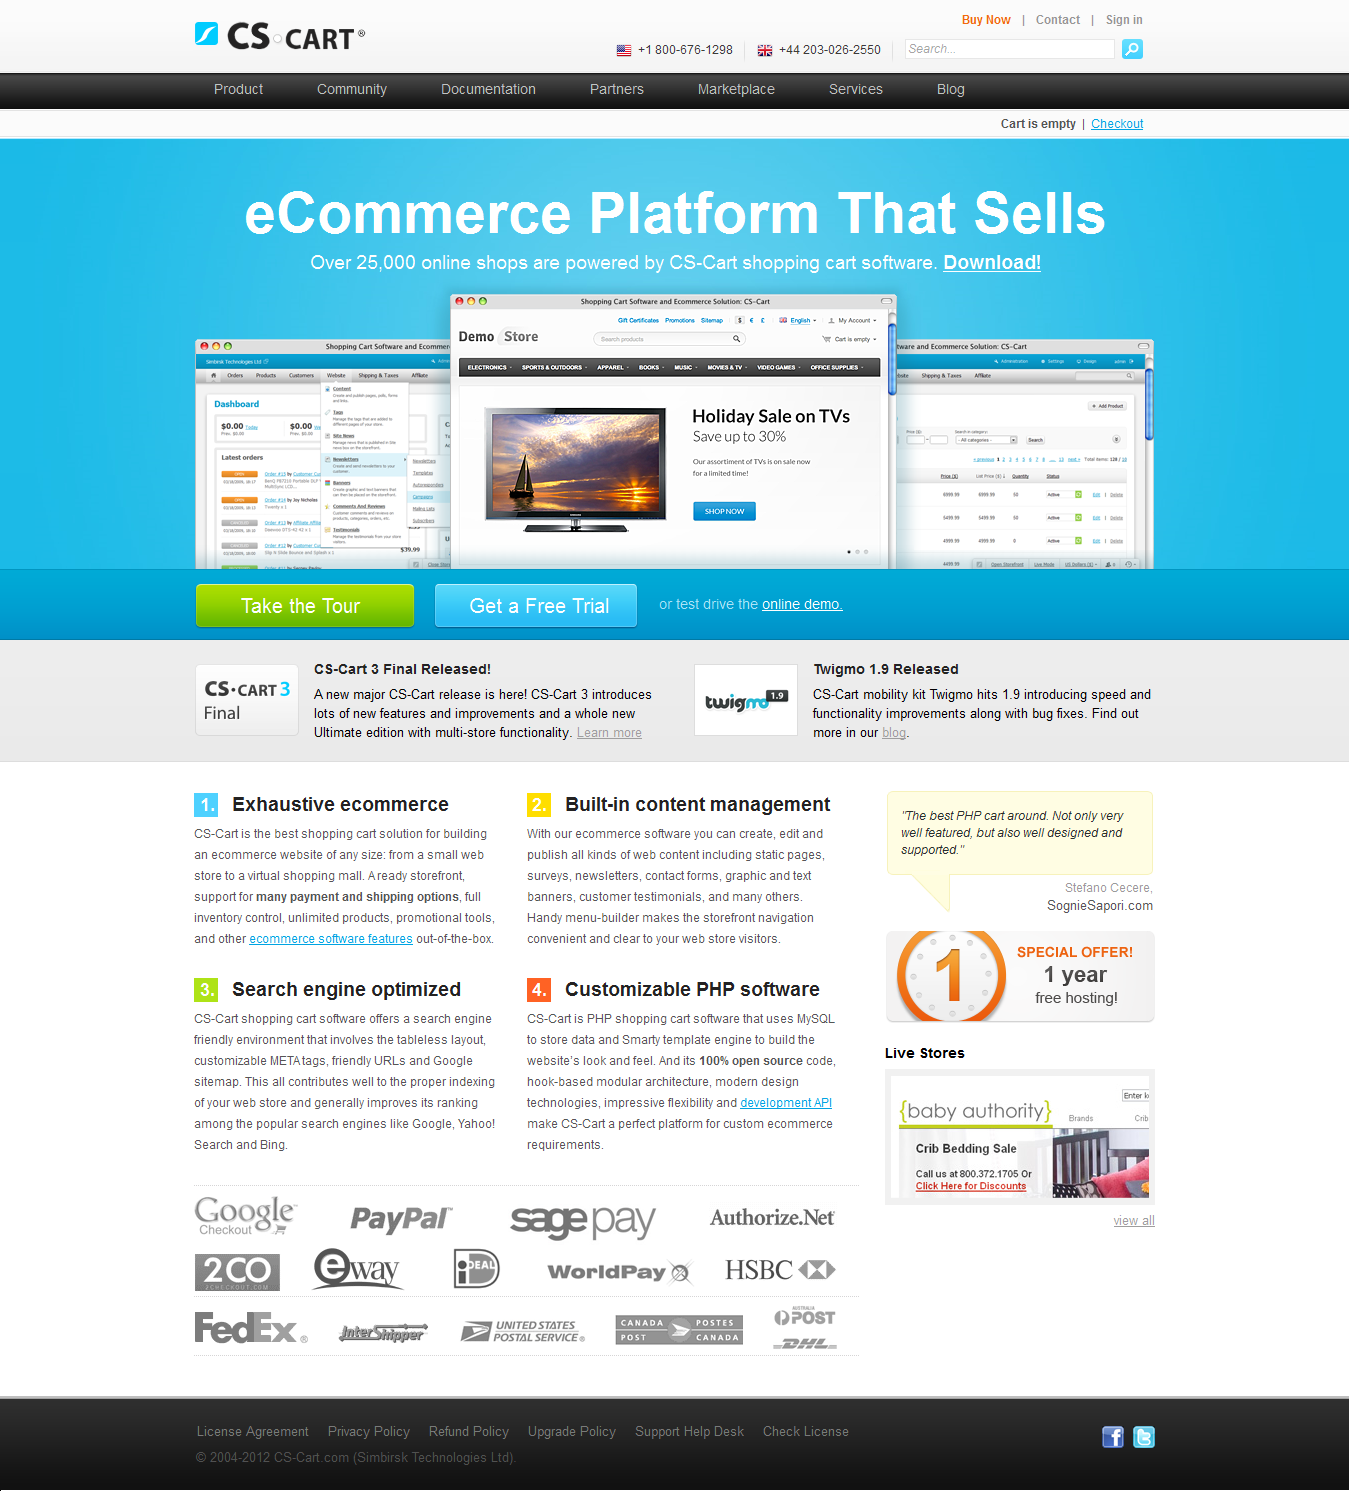 yahoo ecommerce templates - advantages of cs cart ecommerce software to build your own